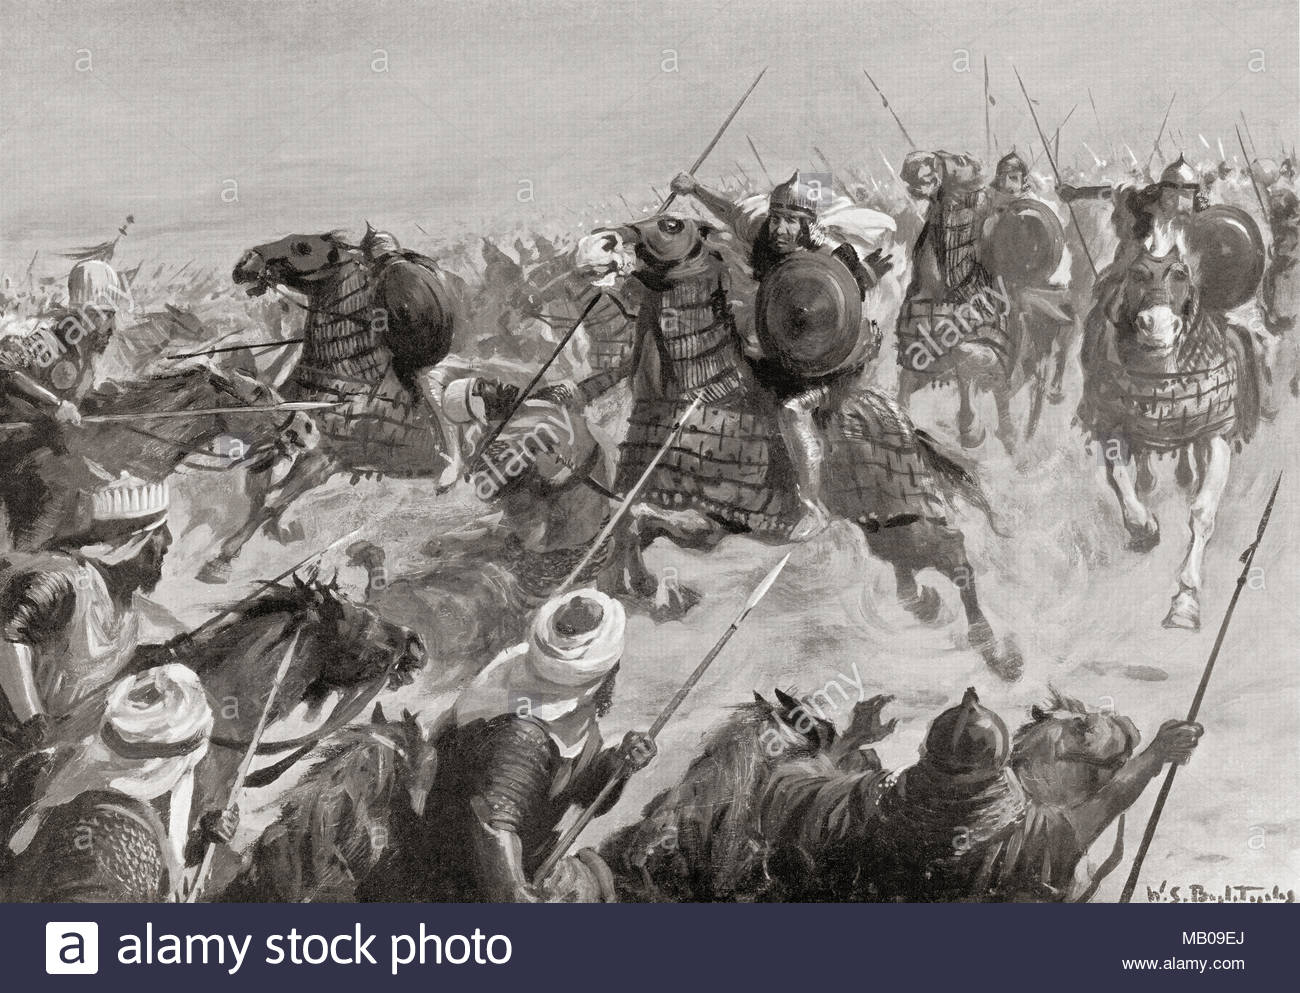 Tamerlane invading Persia in the late 14th century.  Timur, aka Temūr, Amir Timur and Tamerlane, 1336 – 1405.  Turco-Mongol conqueror and as founder of the Timurid Empire in Persia and Central Asia, first ruler in the Timurid dynasty.  After the painting by W.S. Bagdatopoulus, (1888-1965).  From Hutchinson's History of the Nations, published 1915 - Stock Image